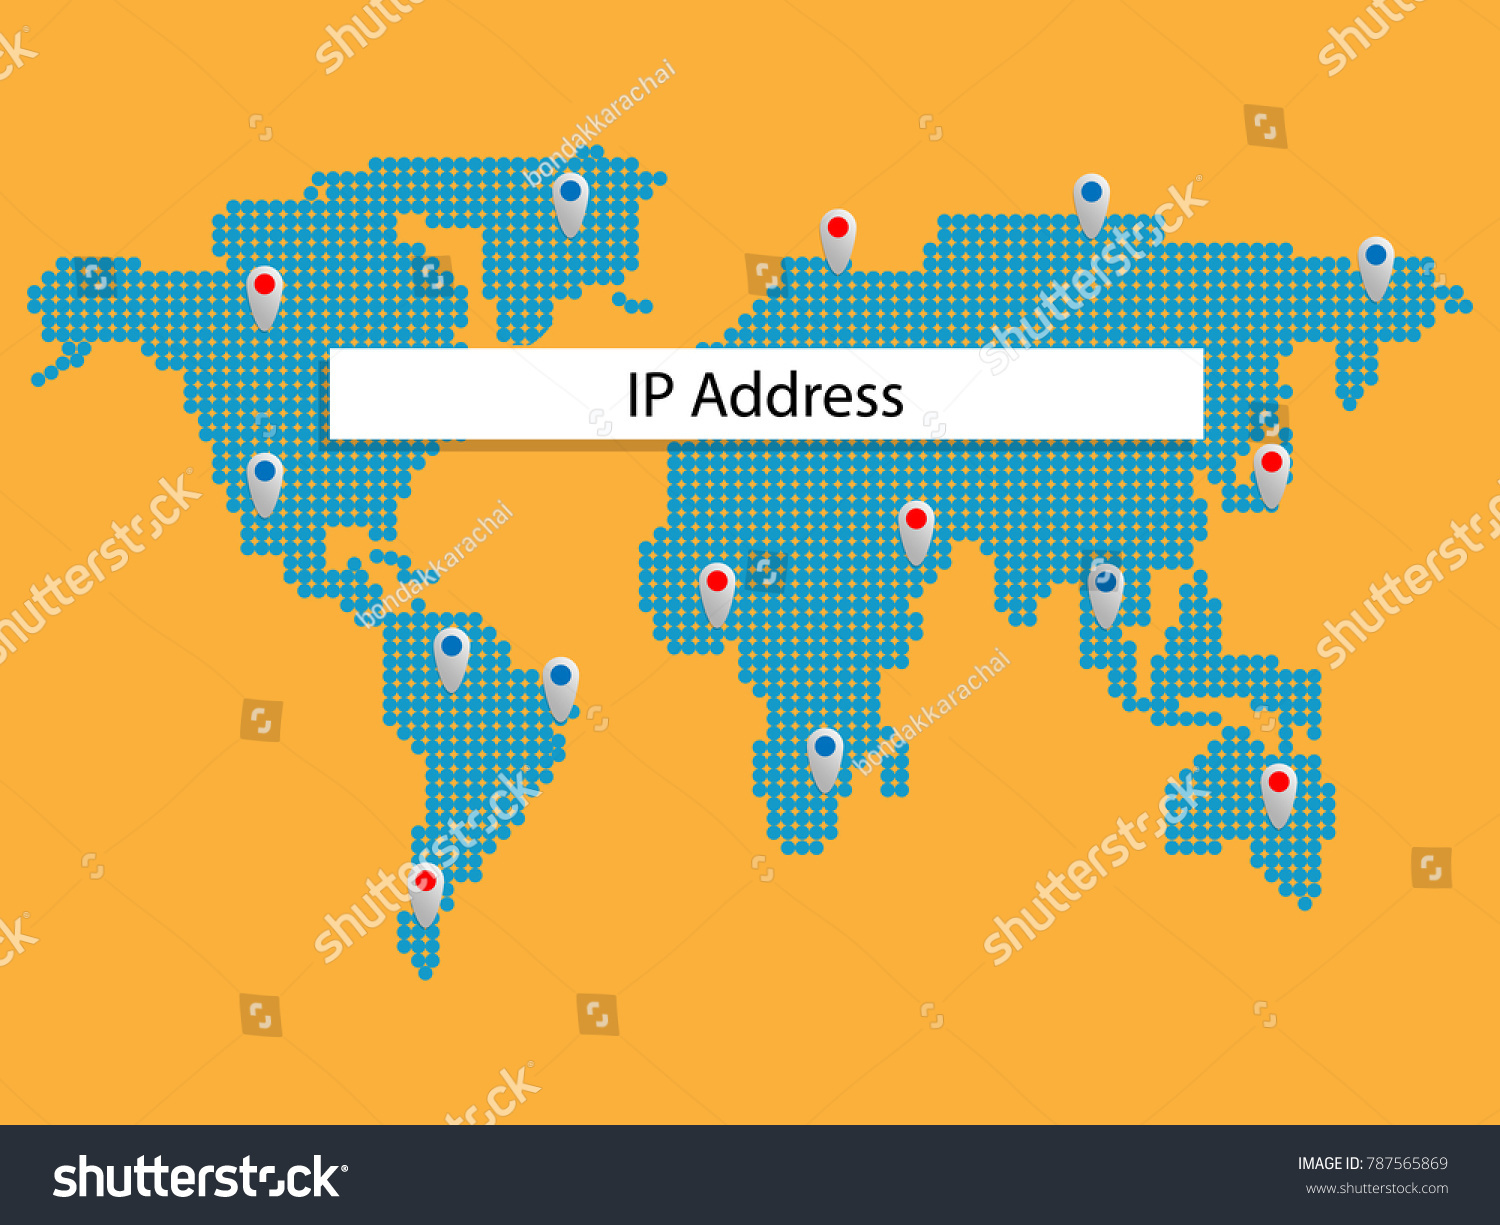 how to show ip addresses on a map